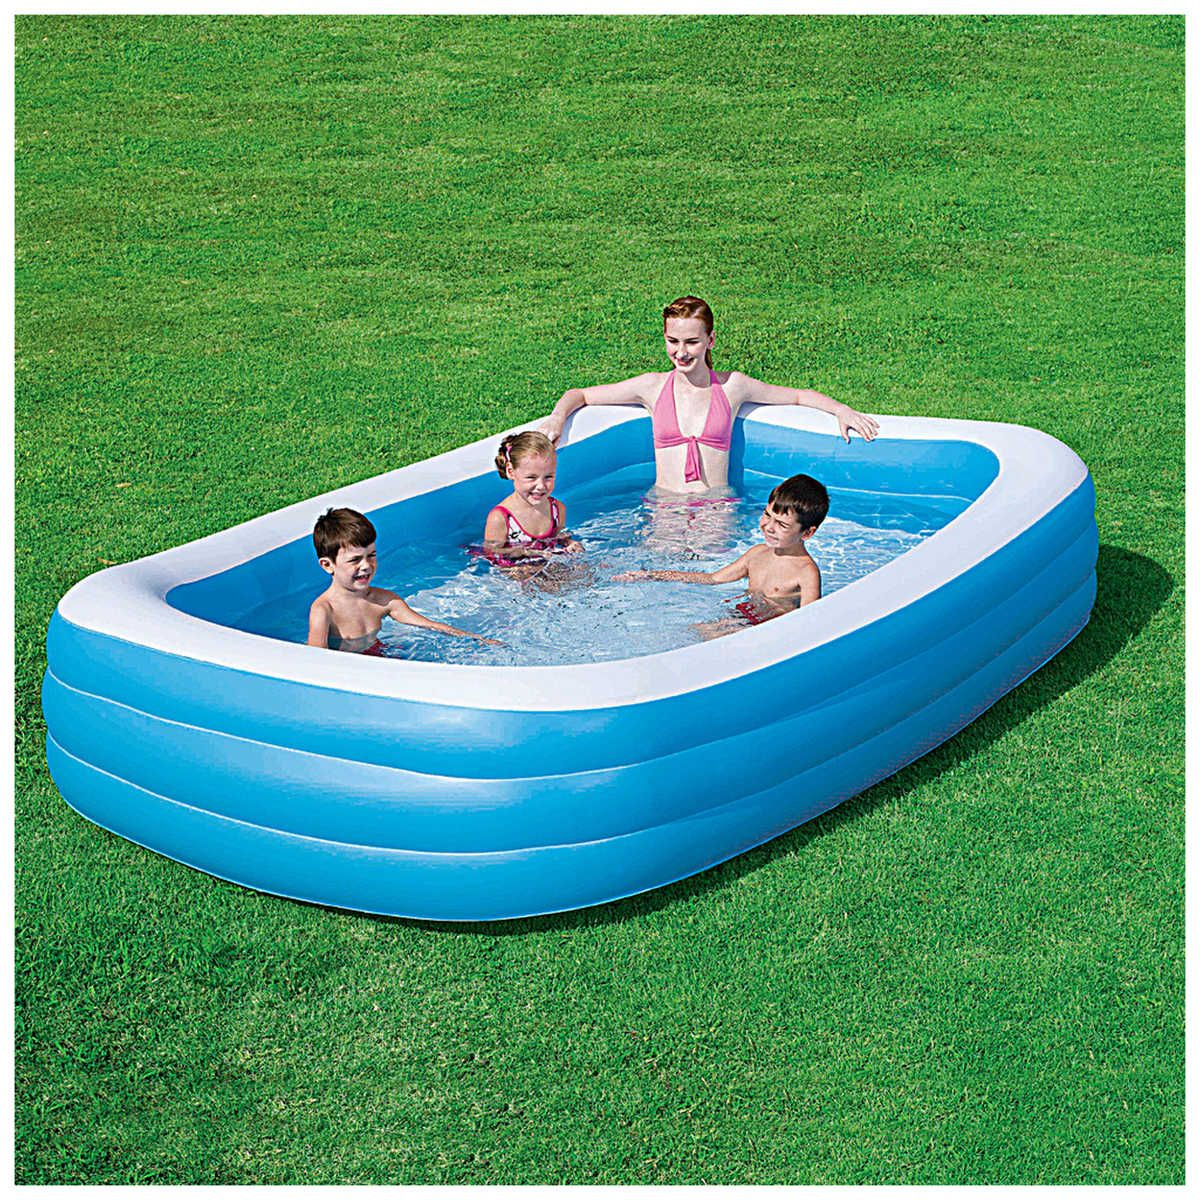 Rectangular Family Pool | Family Pool, Portable Swimming ... destiné Piscine A Balle Toysrus